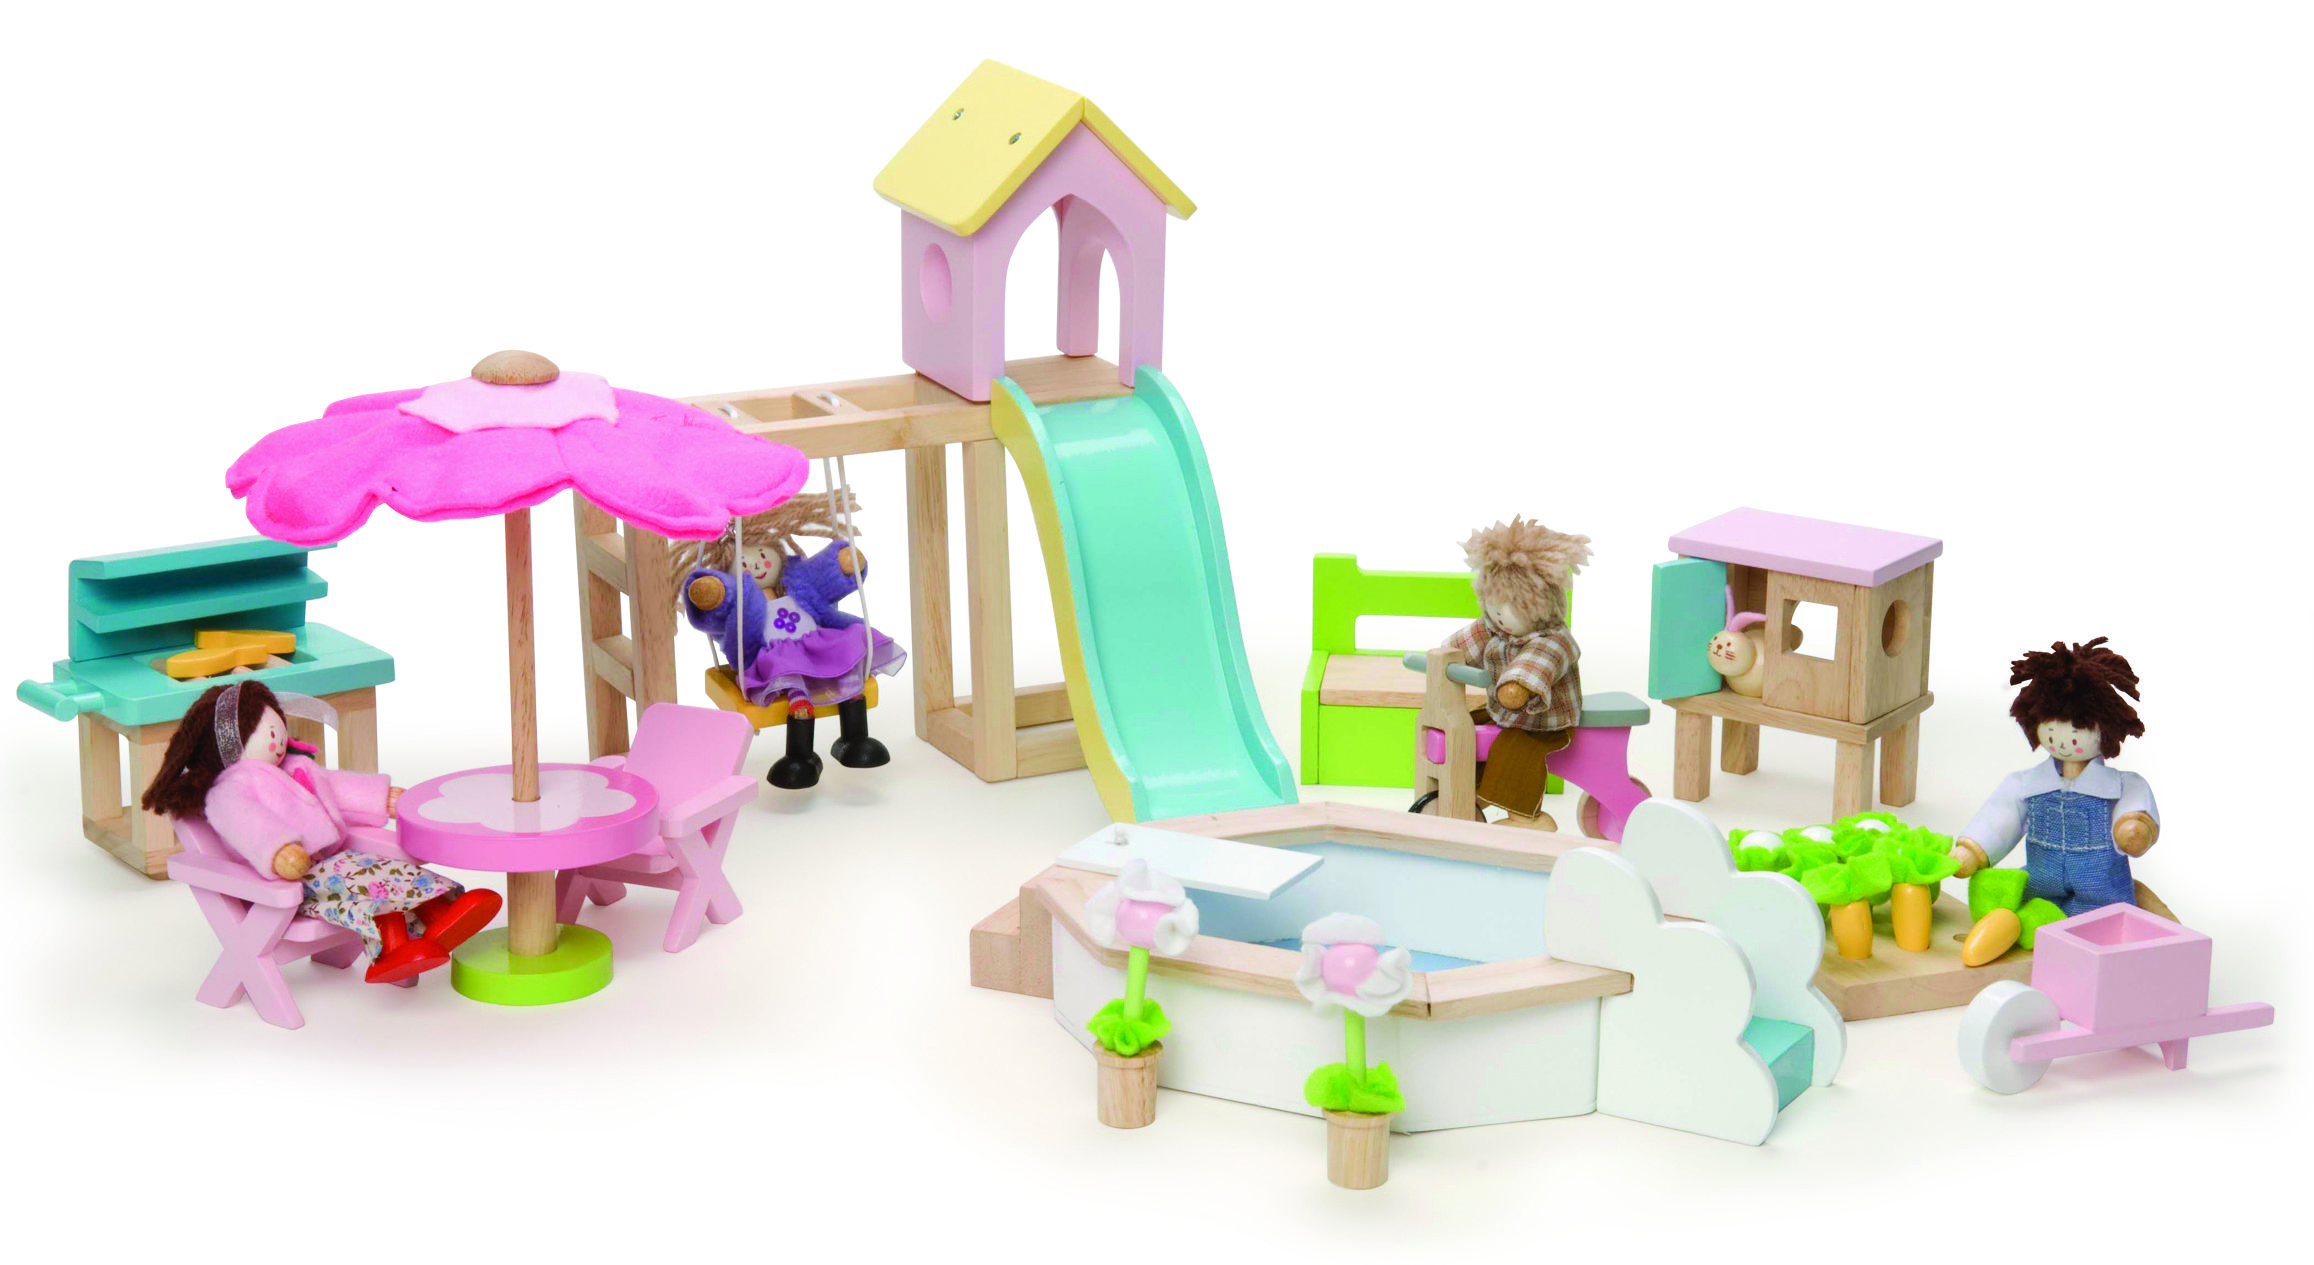 Le Toy Van Outdoor Garden Set #toys2learn #letoyvan#outdoor#garden#set#doll #dollhouse#toys#toy#children#child